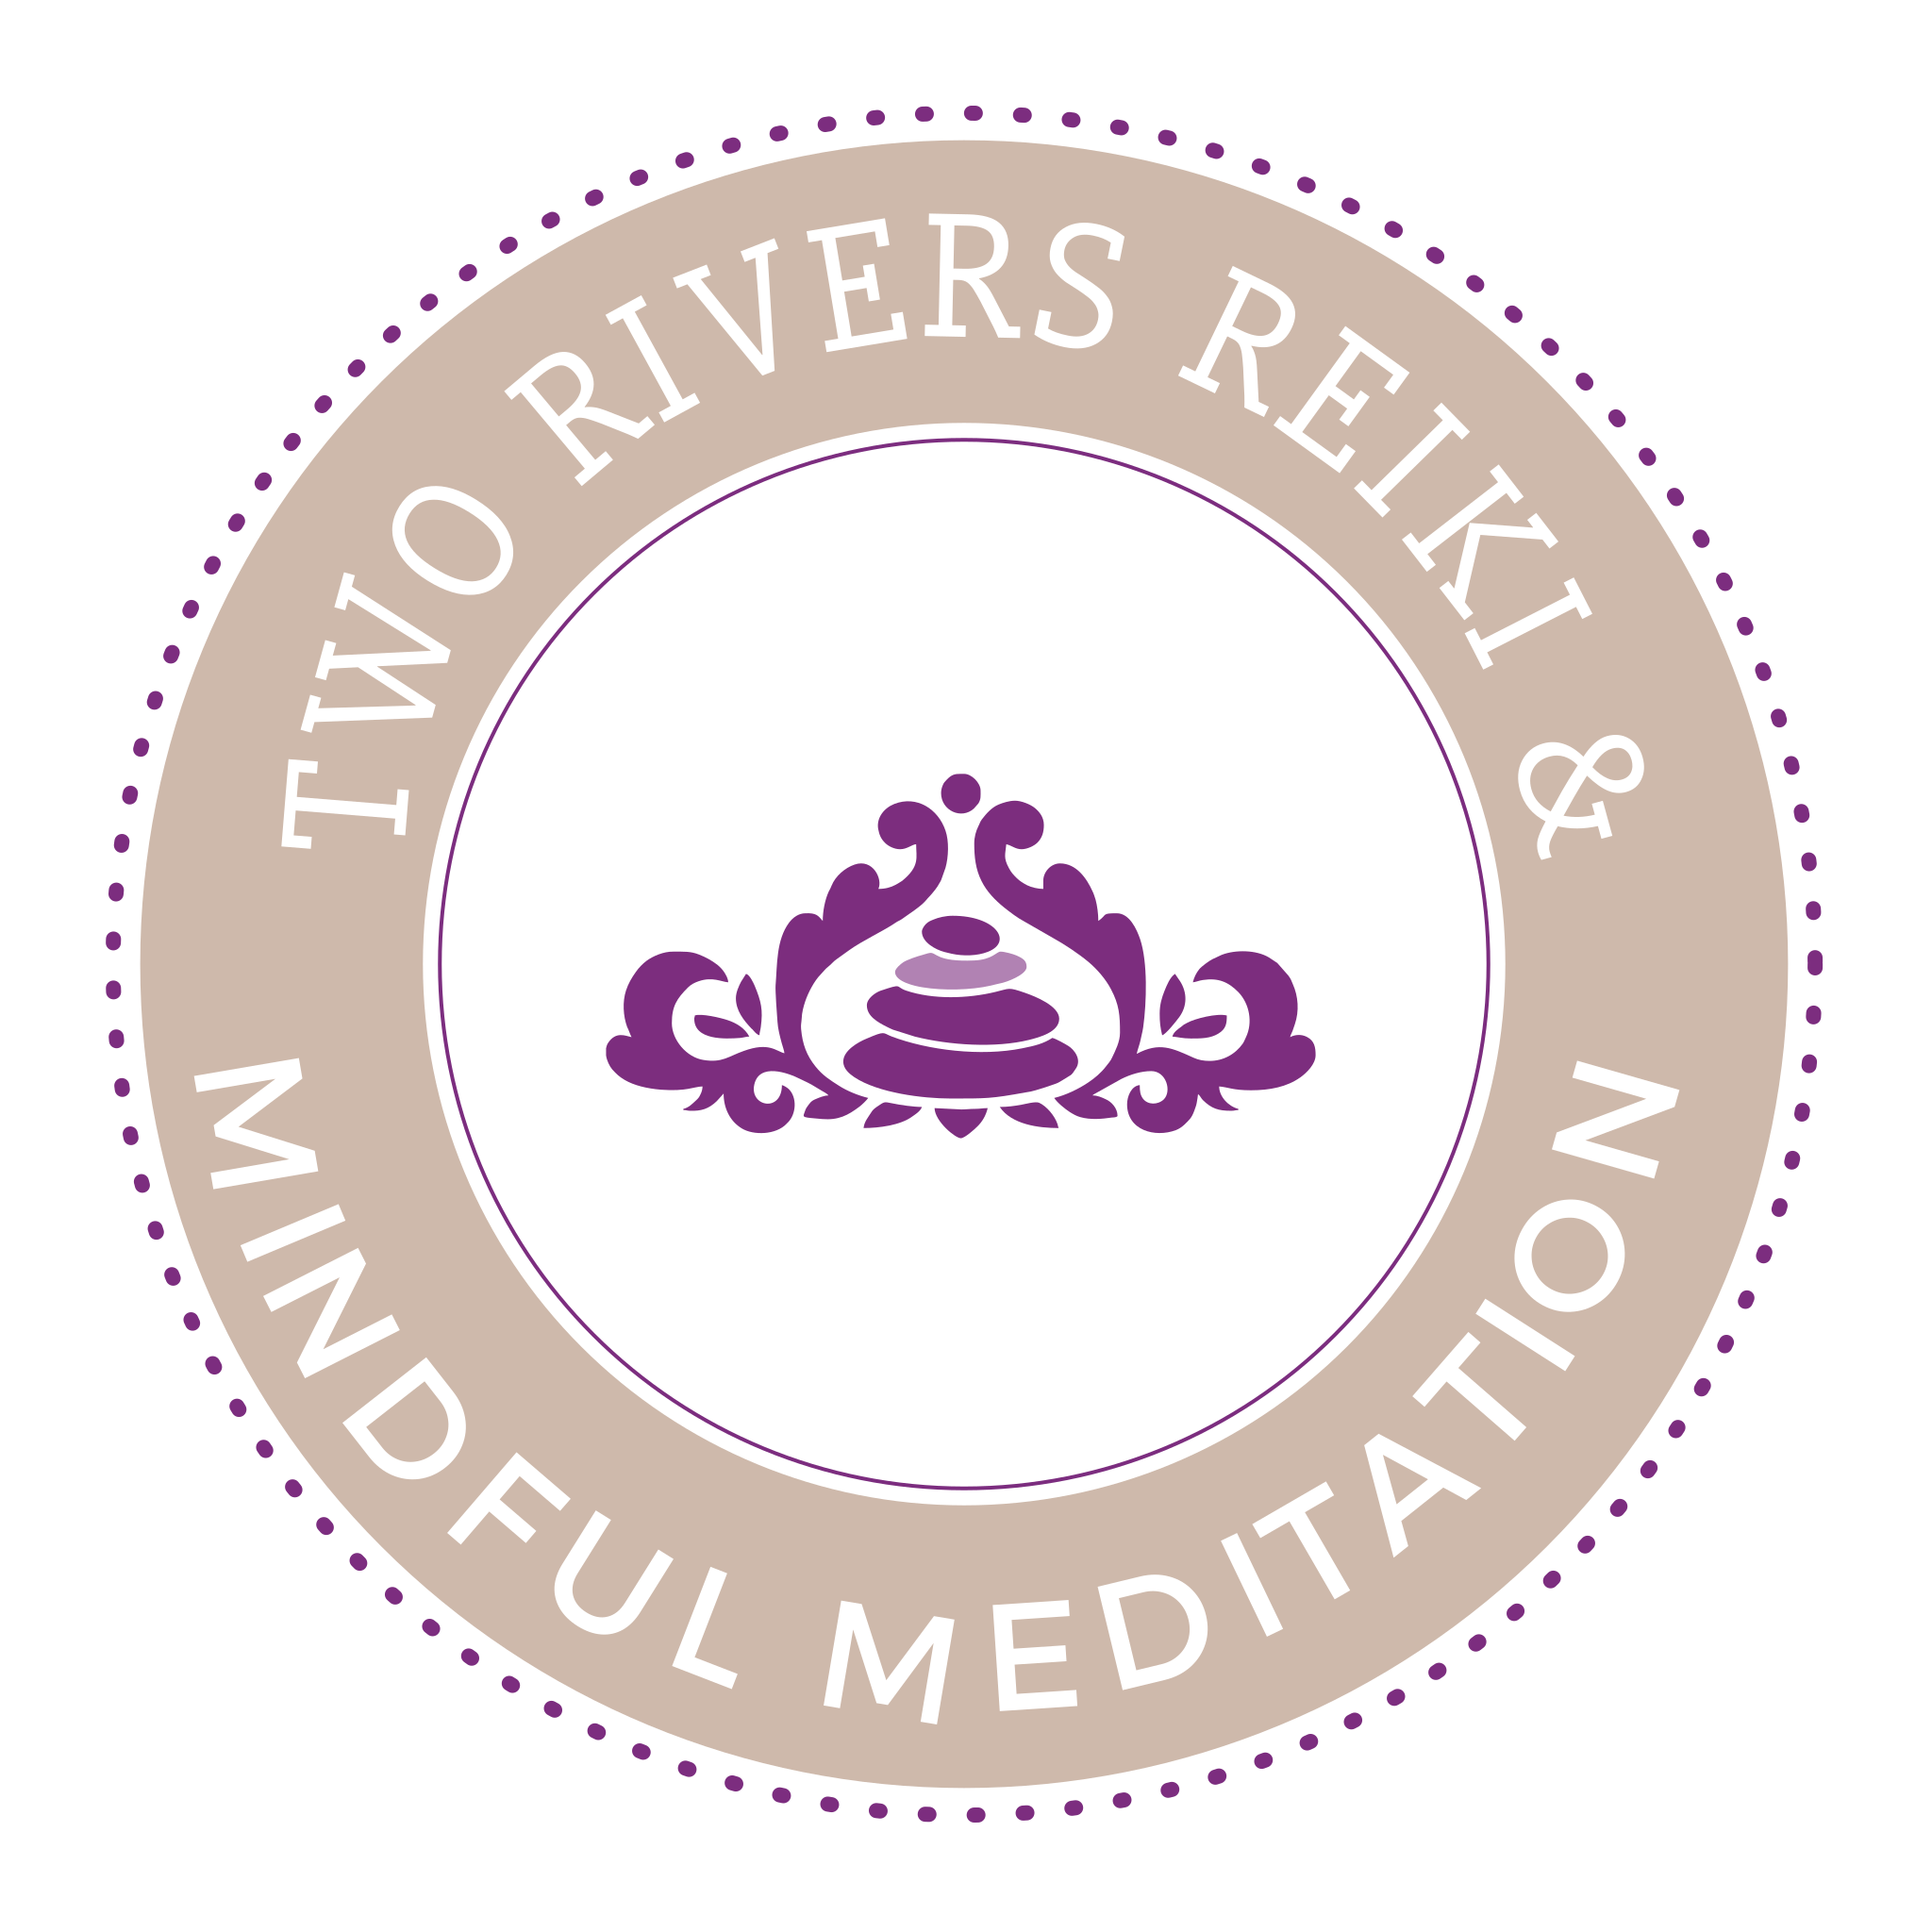 The Reiki Room at Two Rivers Reiki & Mindful Meditation